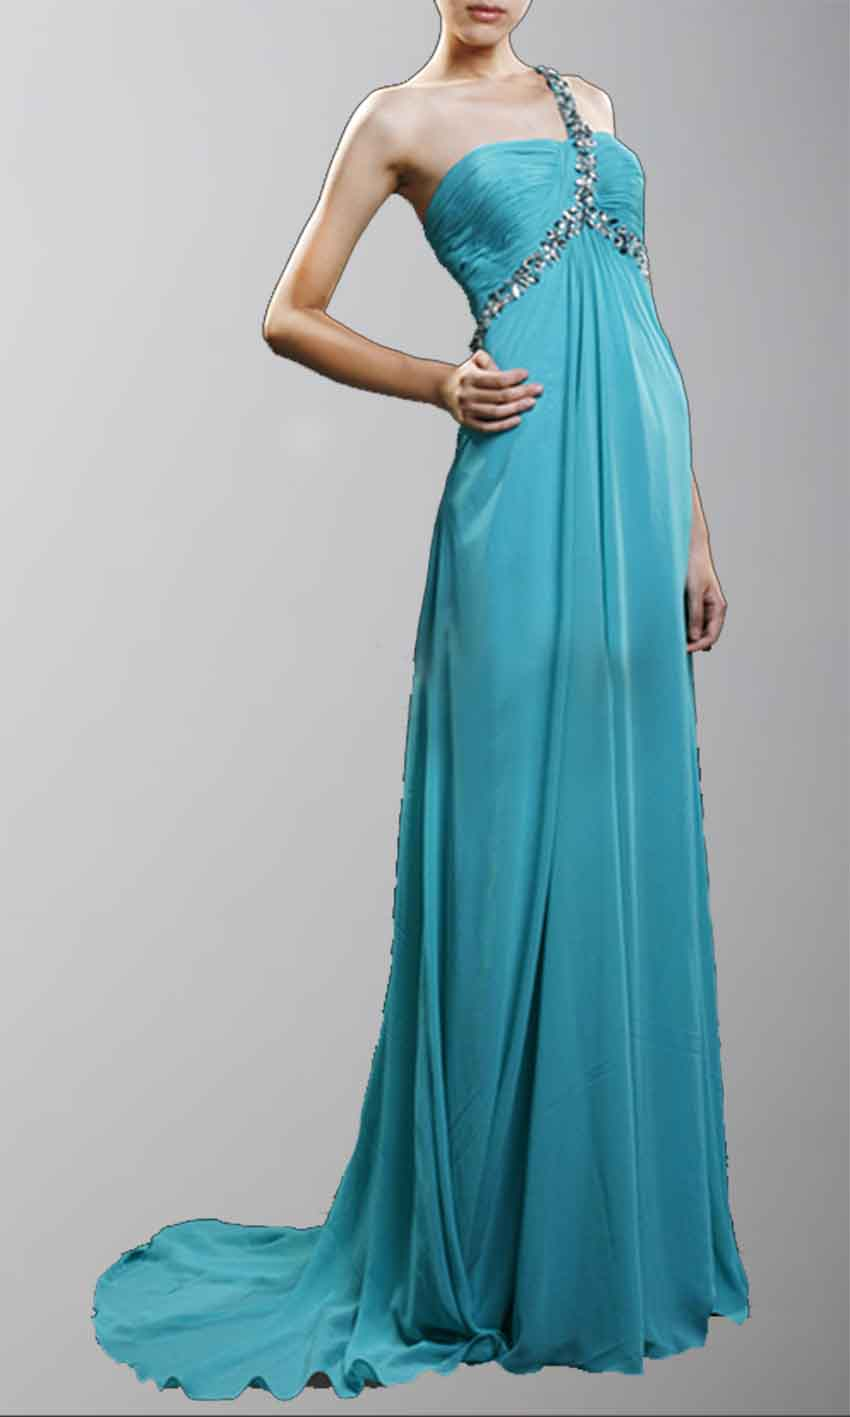 Amazing Blue Beaded One Shoulder Prom Dress KSP132 [KSP132] - £99.00 : Cheap Prom Dresses Uk, Bridesmaid Dresses, 2014 Prom & Evening Dresses, Look for cheap elegant prom dresses 2014, cocktail gowns, or dresses for special occasions? kissprom.co.uk offers various bridesmaid dresses, evening dress, free shipping to UK etc.